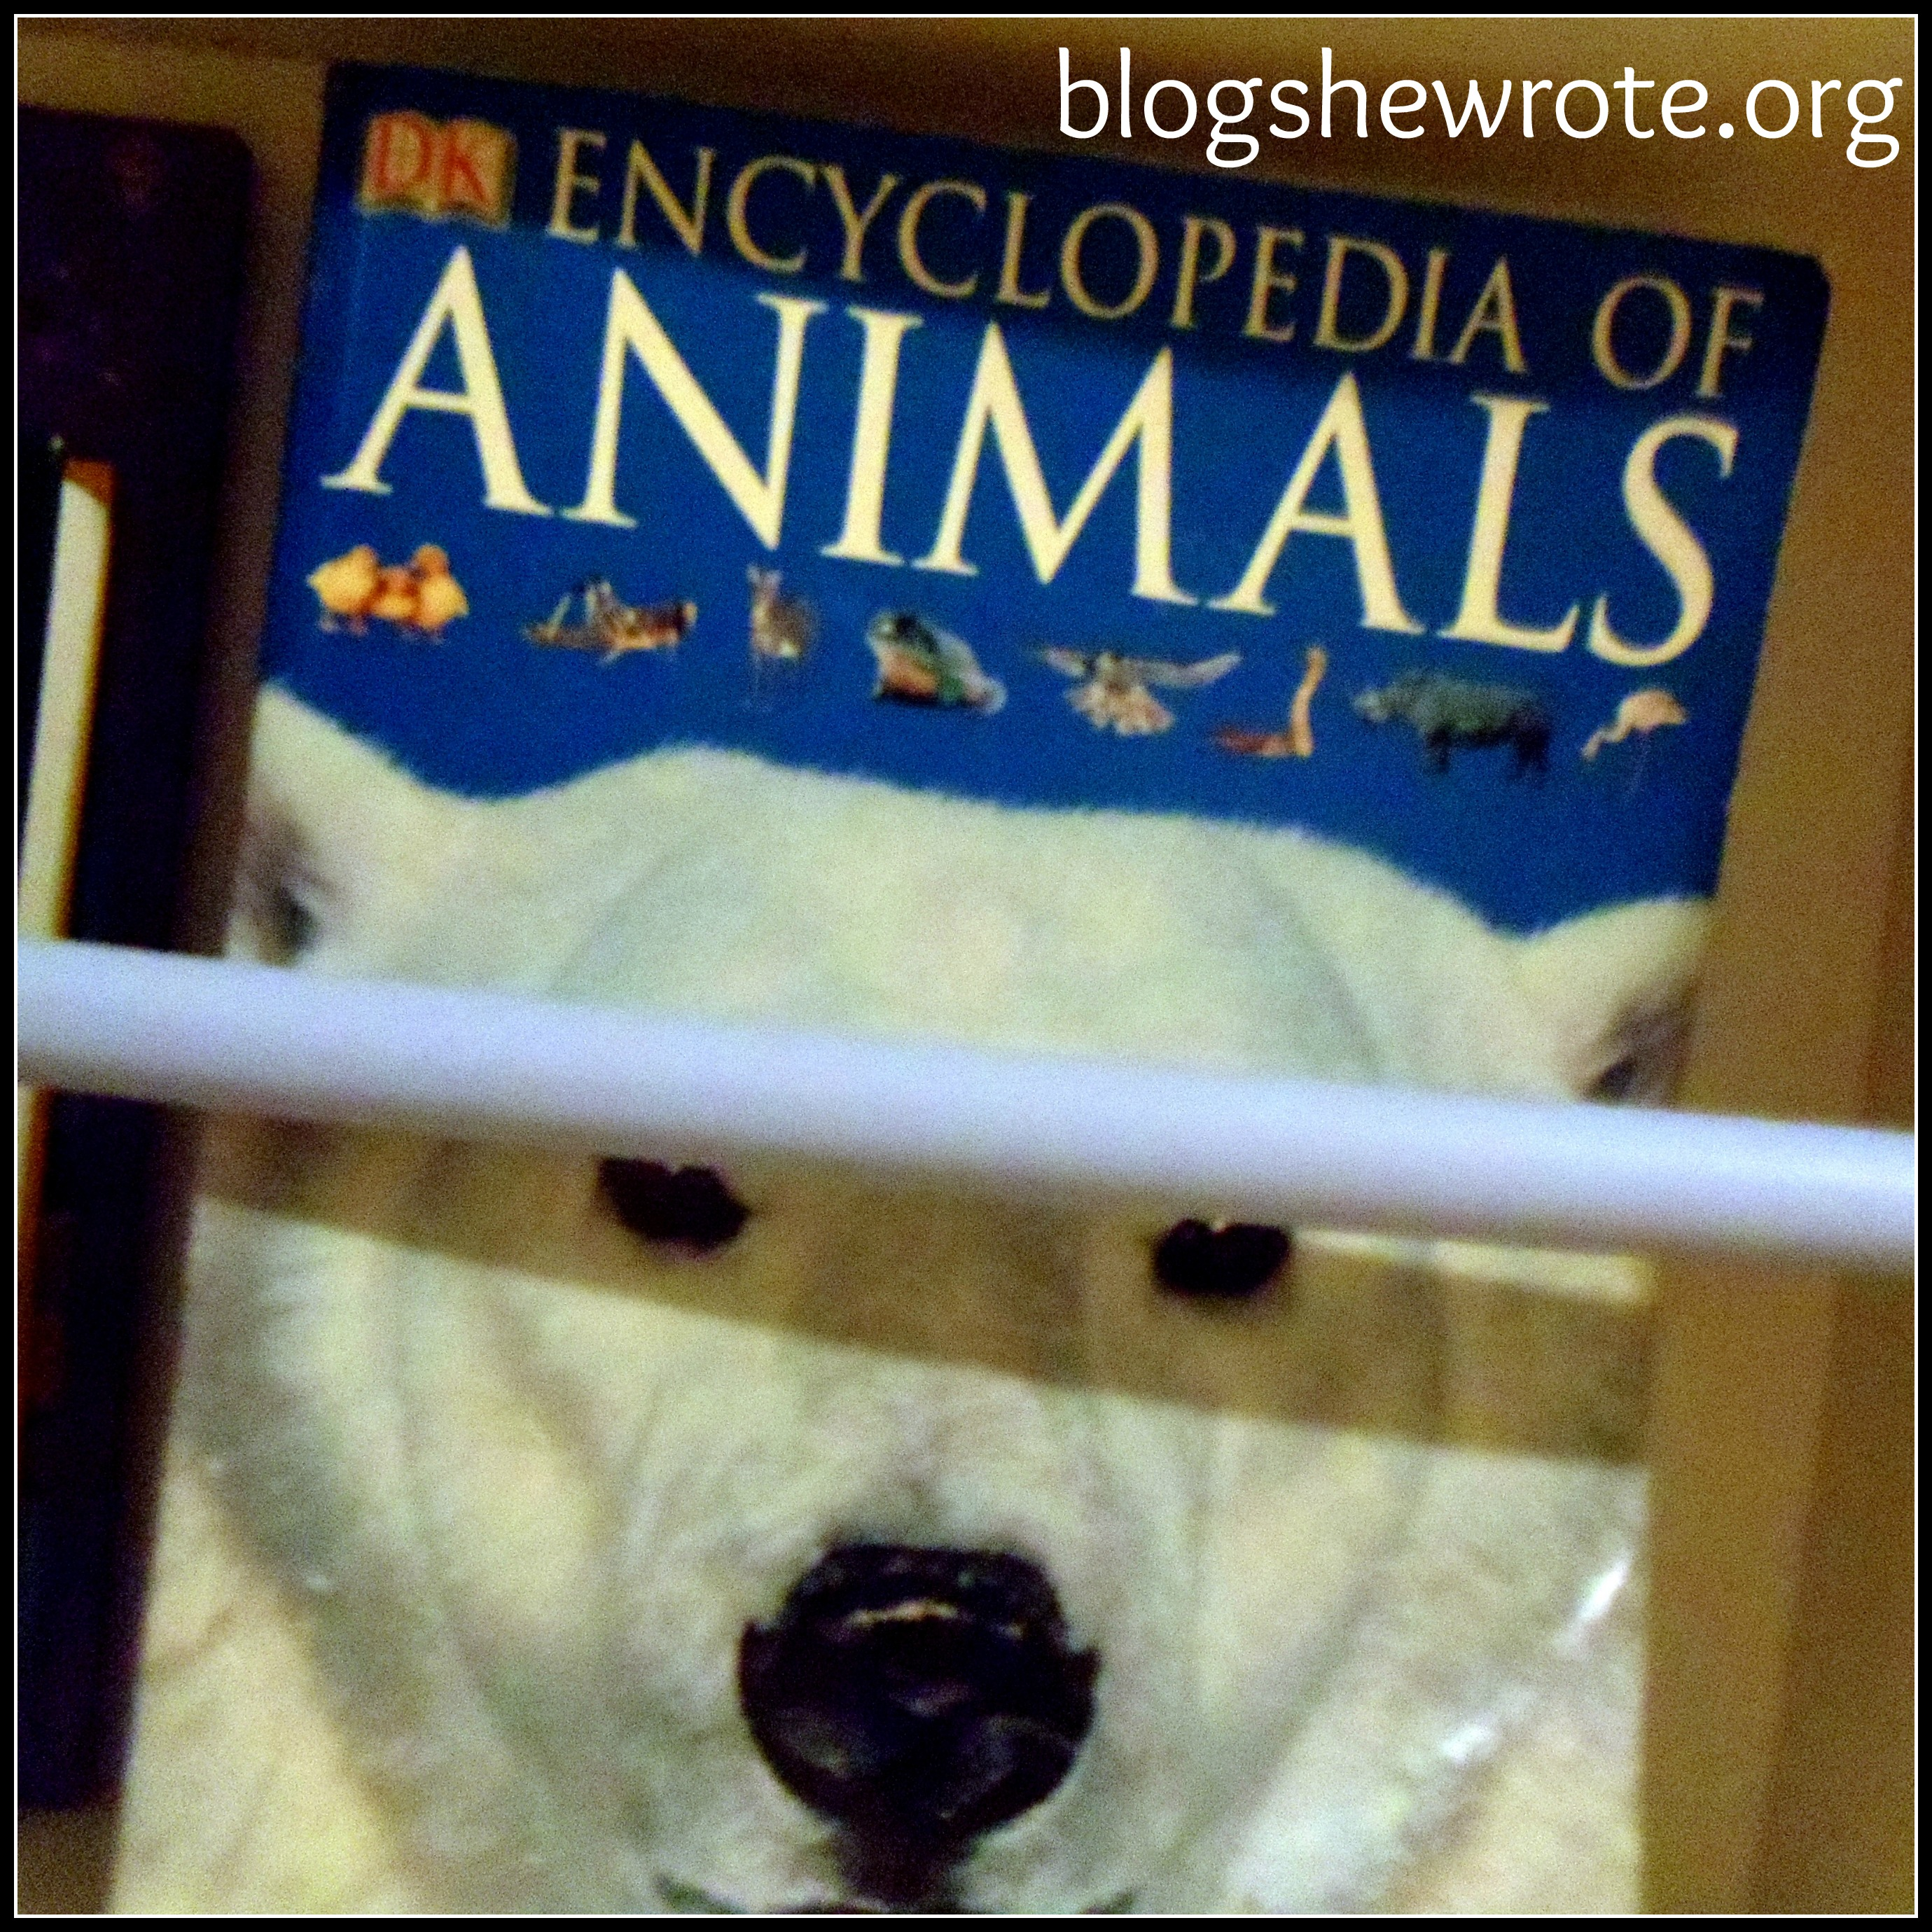 Blog She Wrote: Top Ten Science & Nature Books